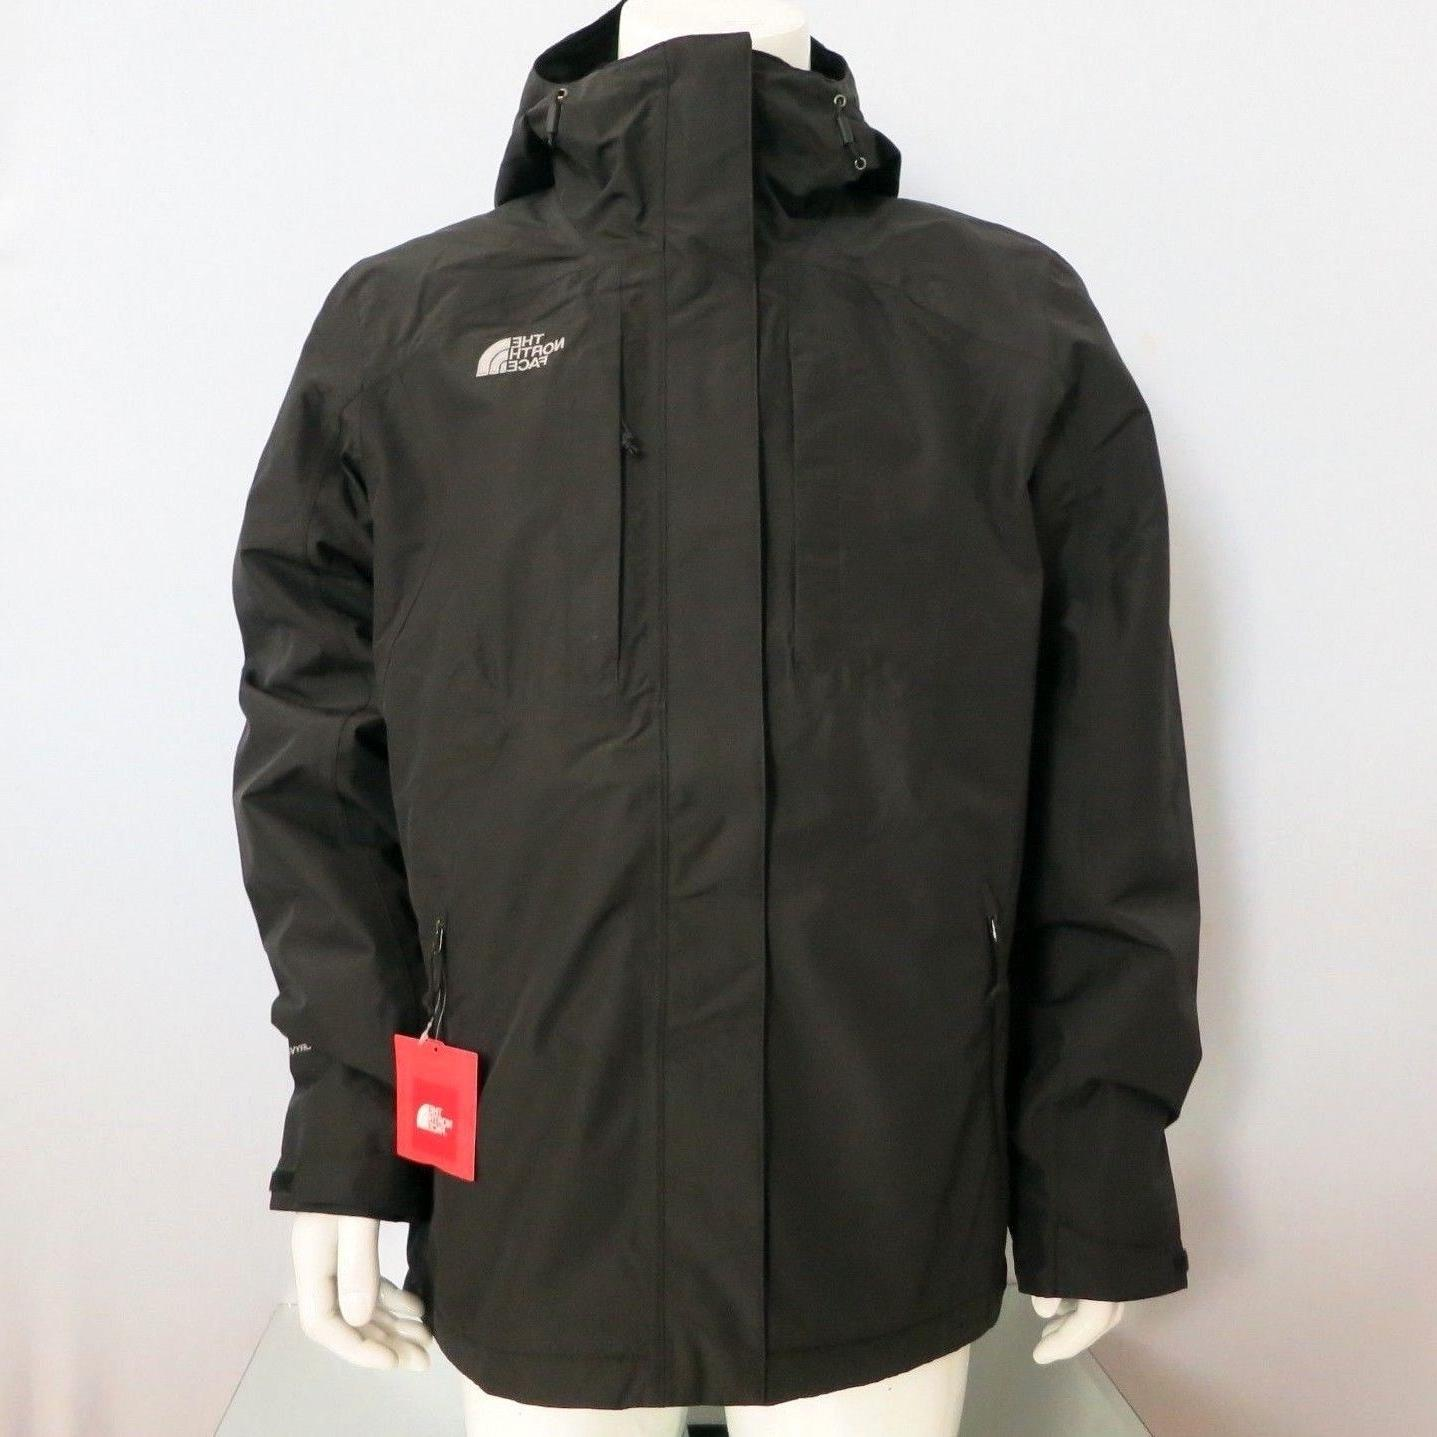 THE NORTH Cinder Triclimate Ski Jacket sz S M